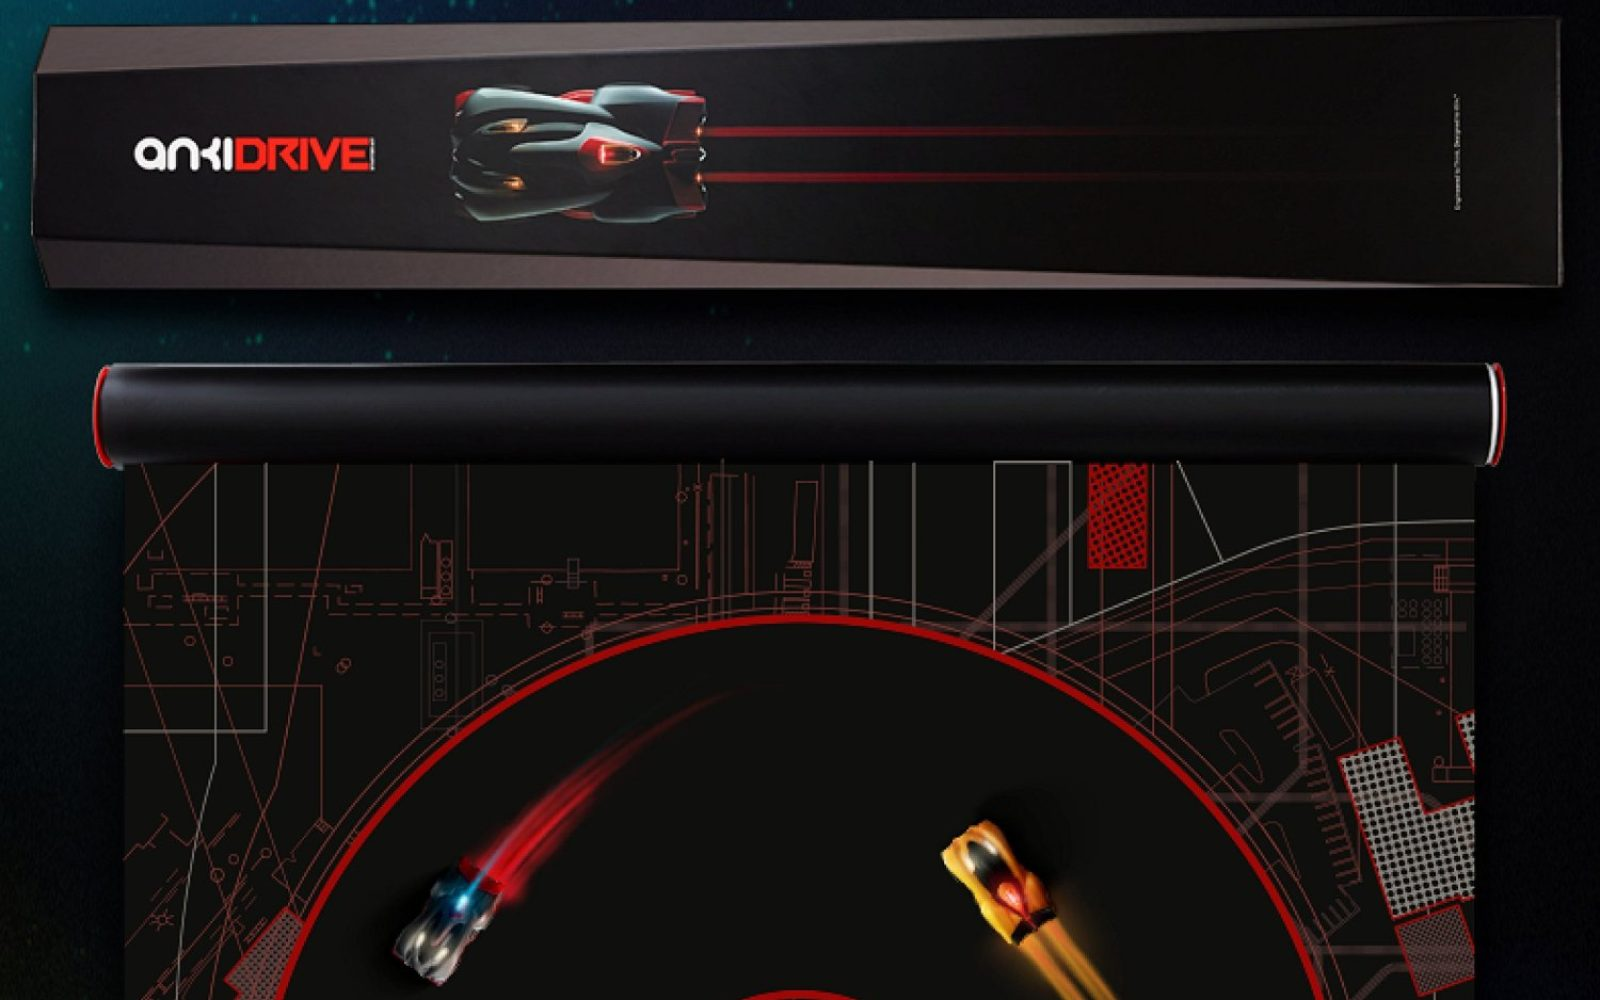 Anki DRIVE Starter Kit: iOS/Android-controlled robot battle racing